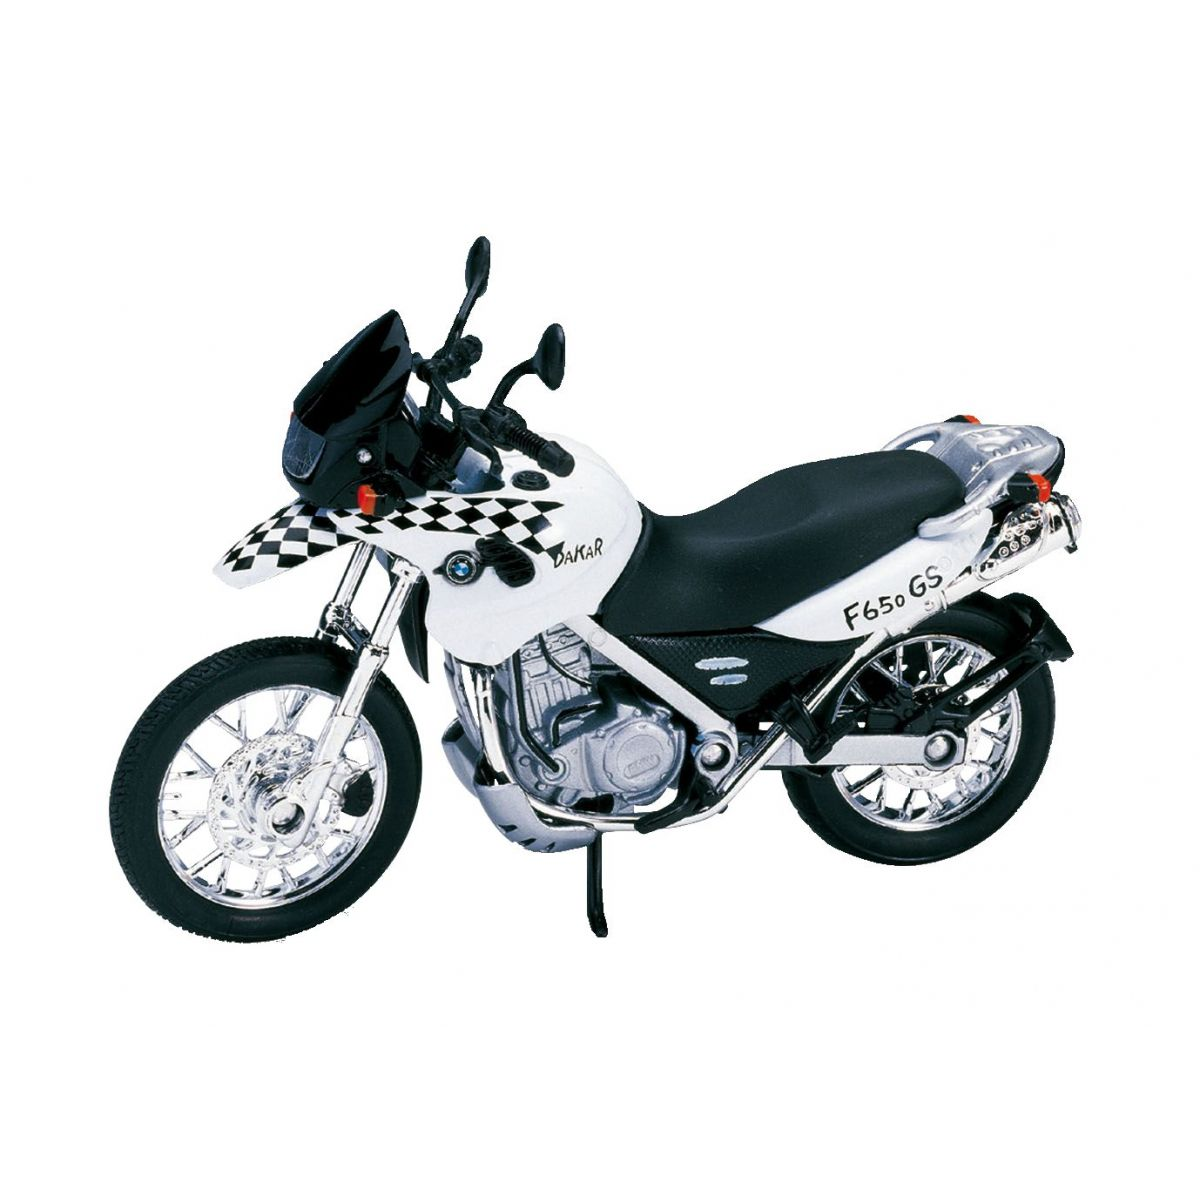 Dromader Welly Motorka 11cm - BMW F650 GS Dakar